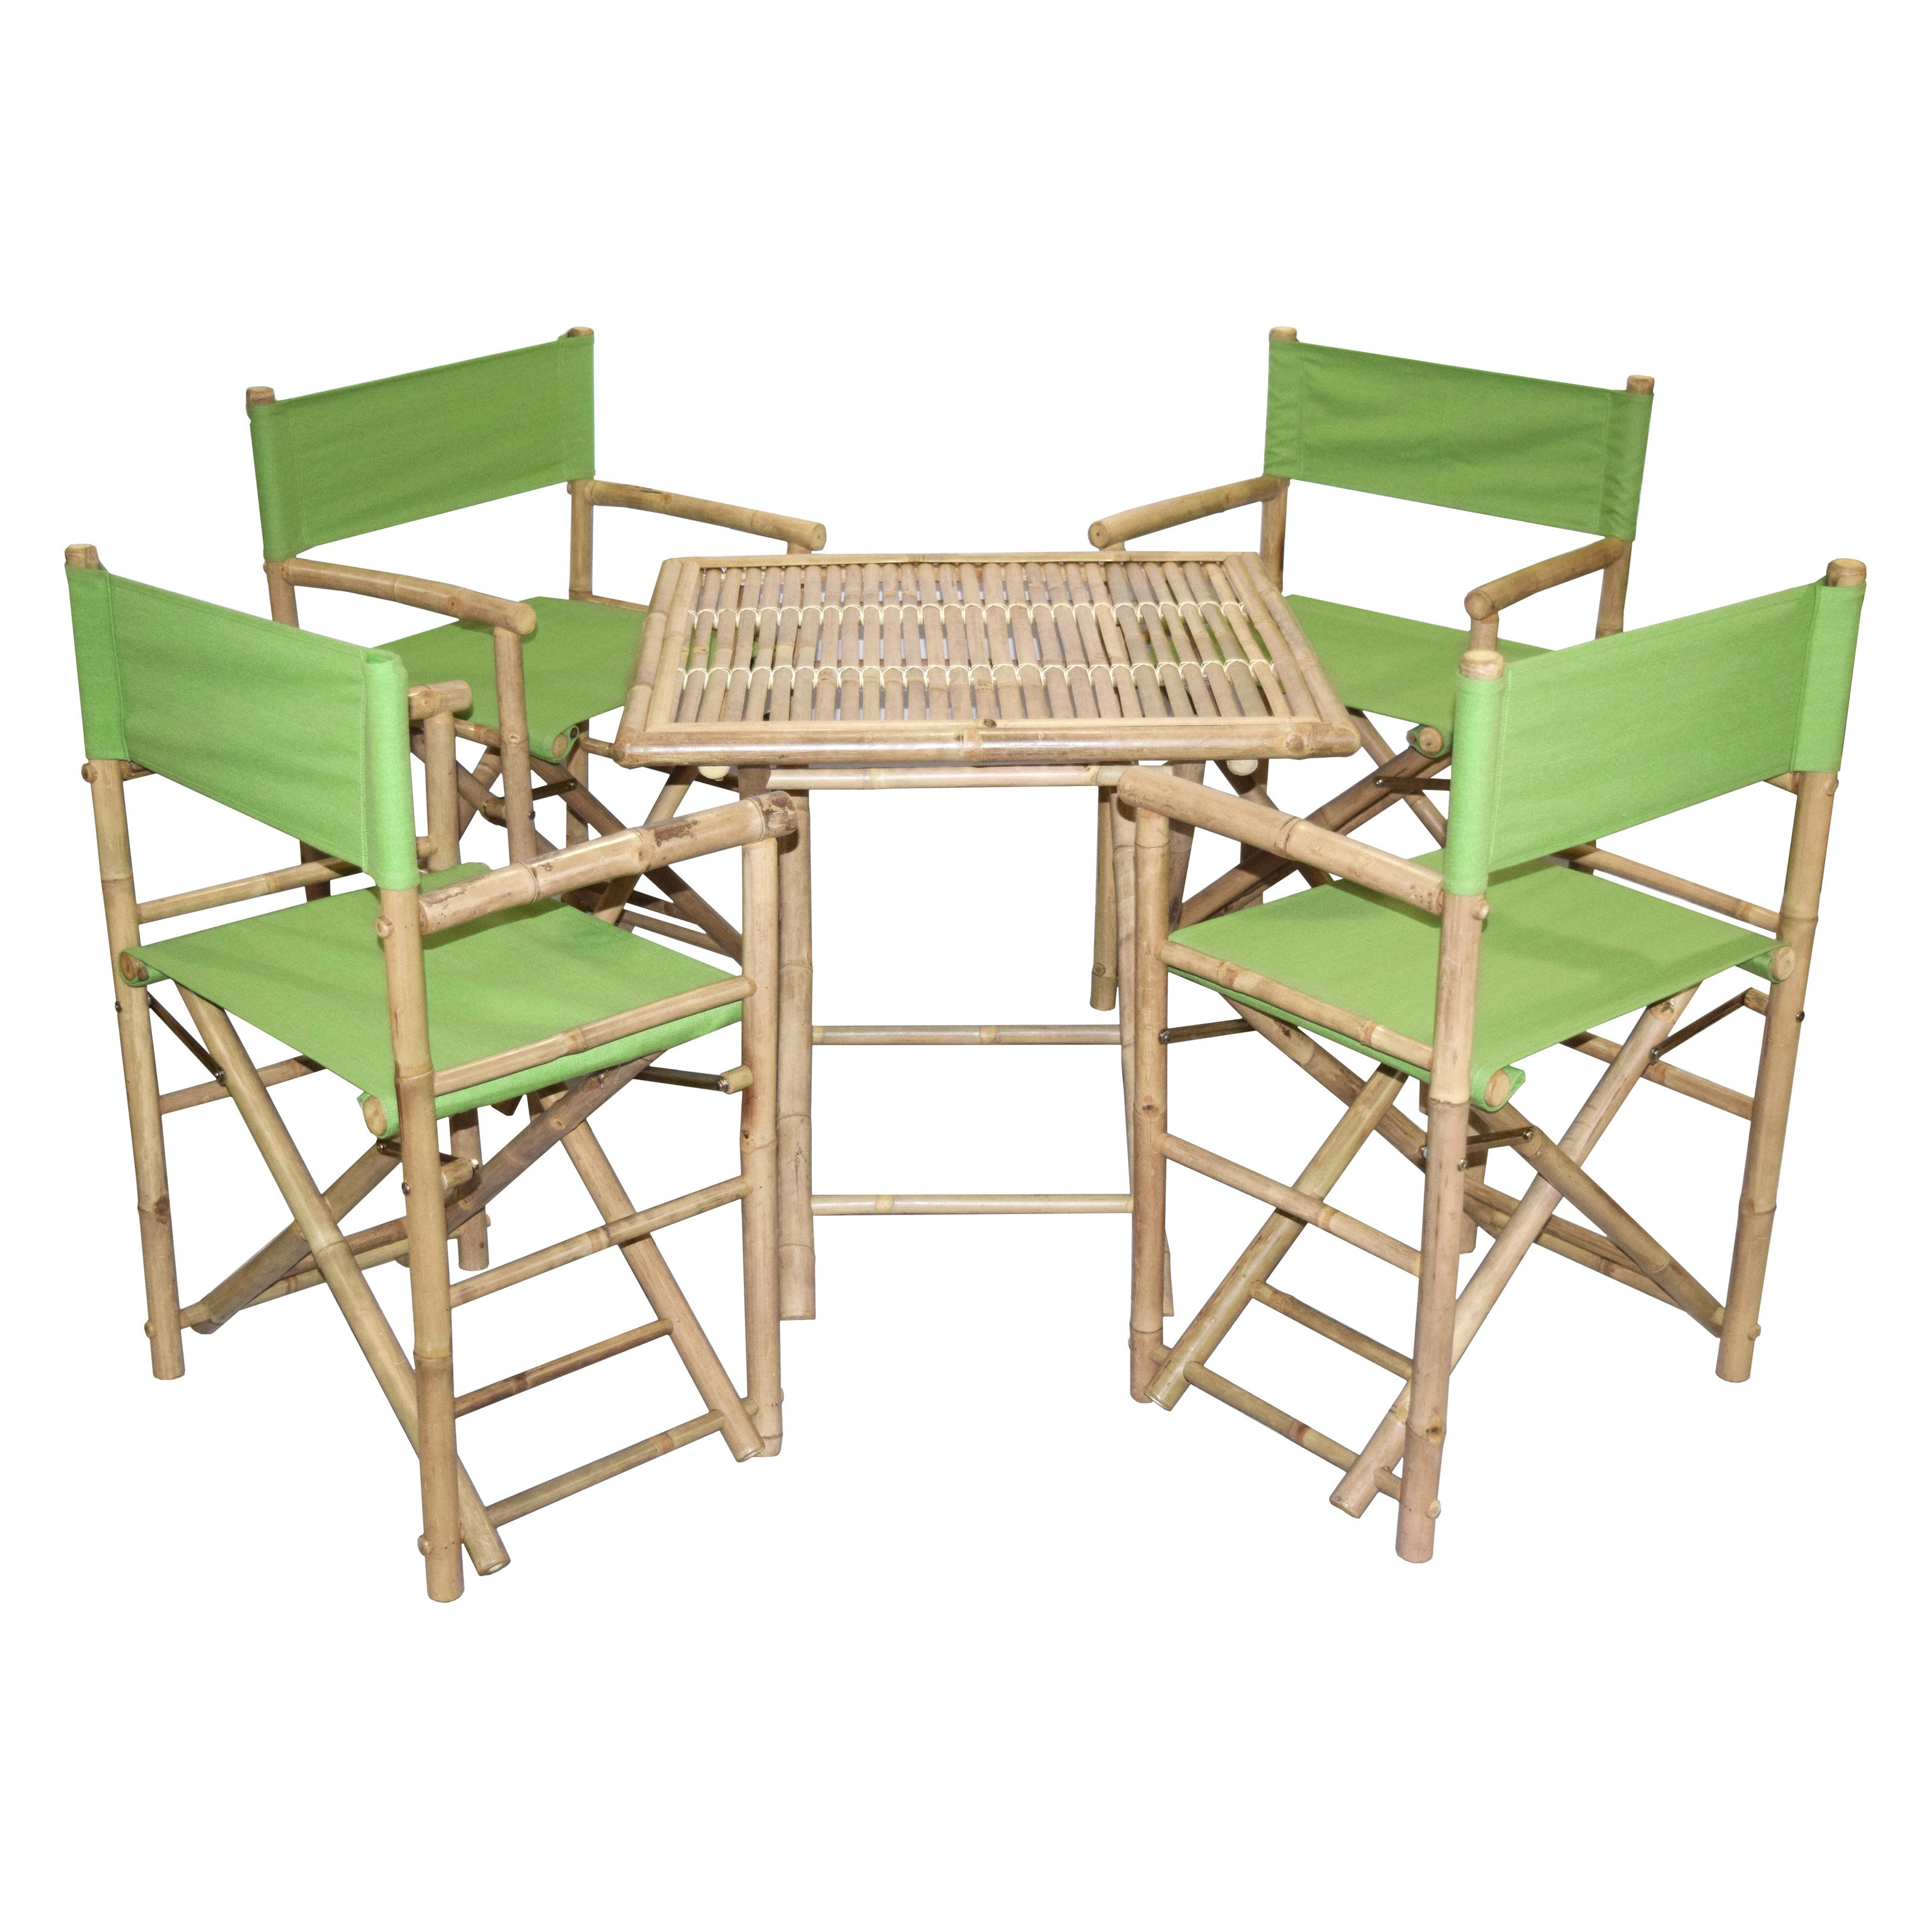 5-Pc Eco-friendly Outdoor Director's Square Chat Set in Green